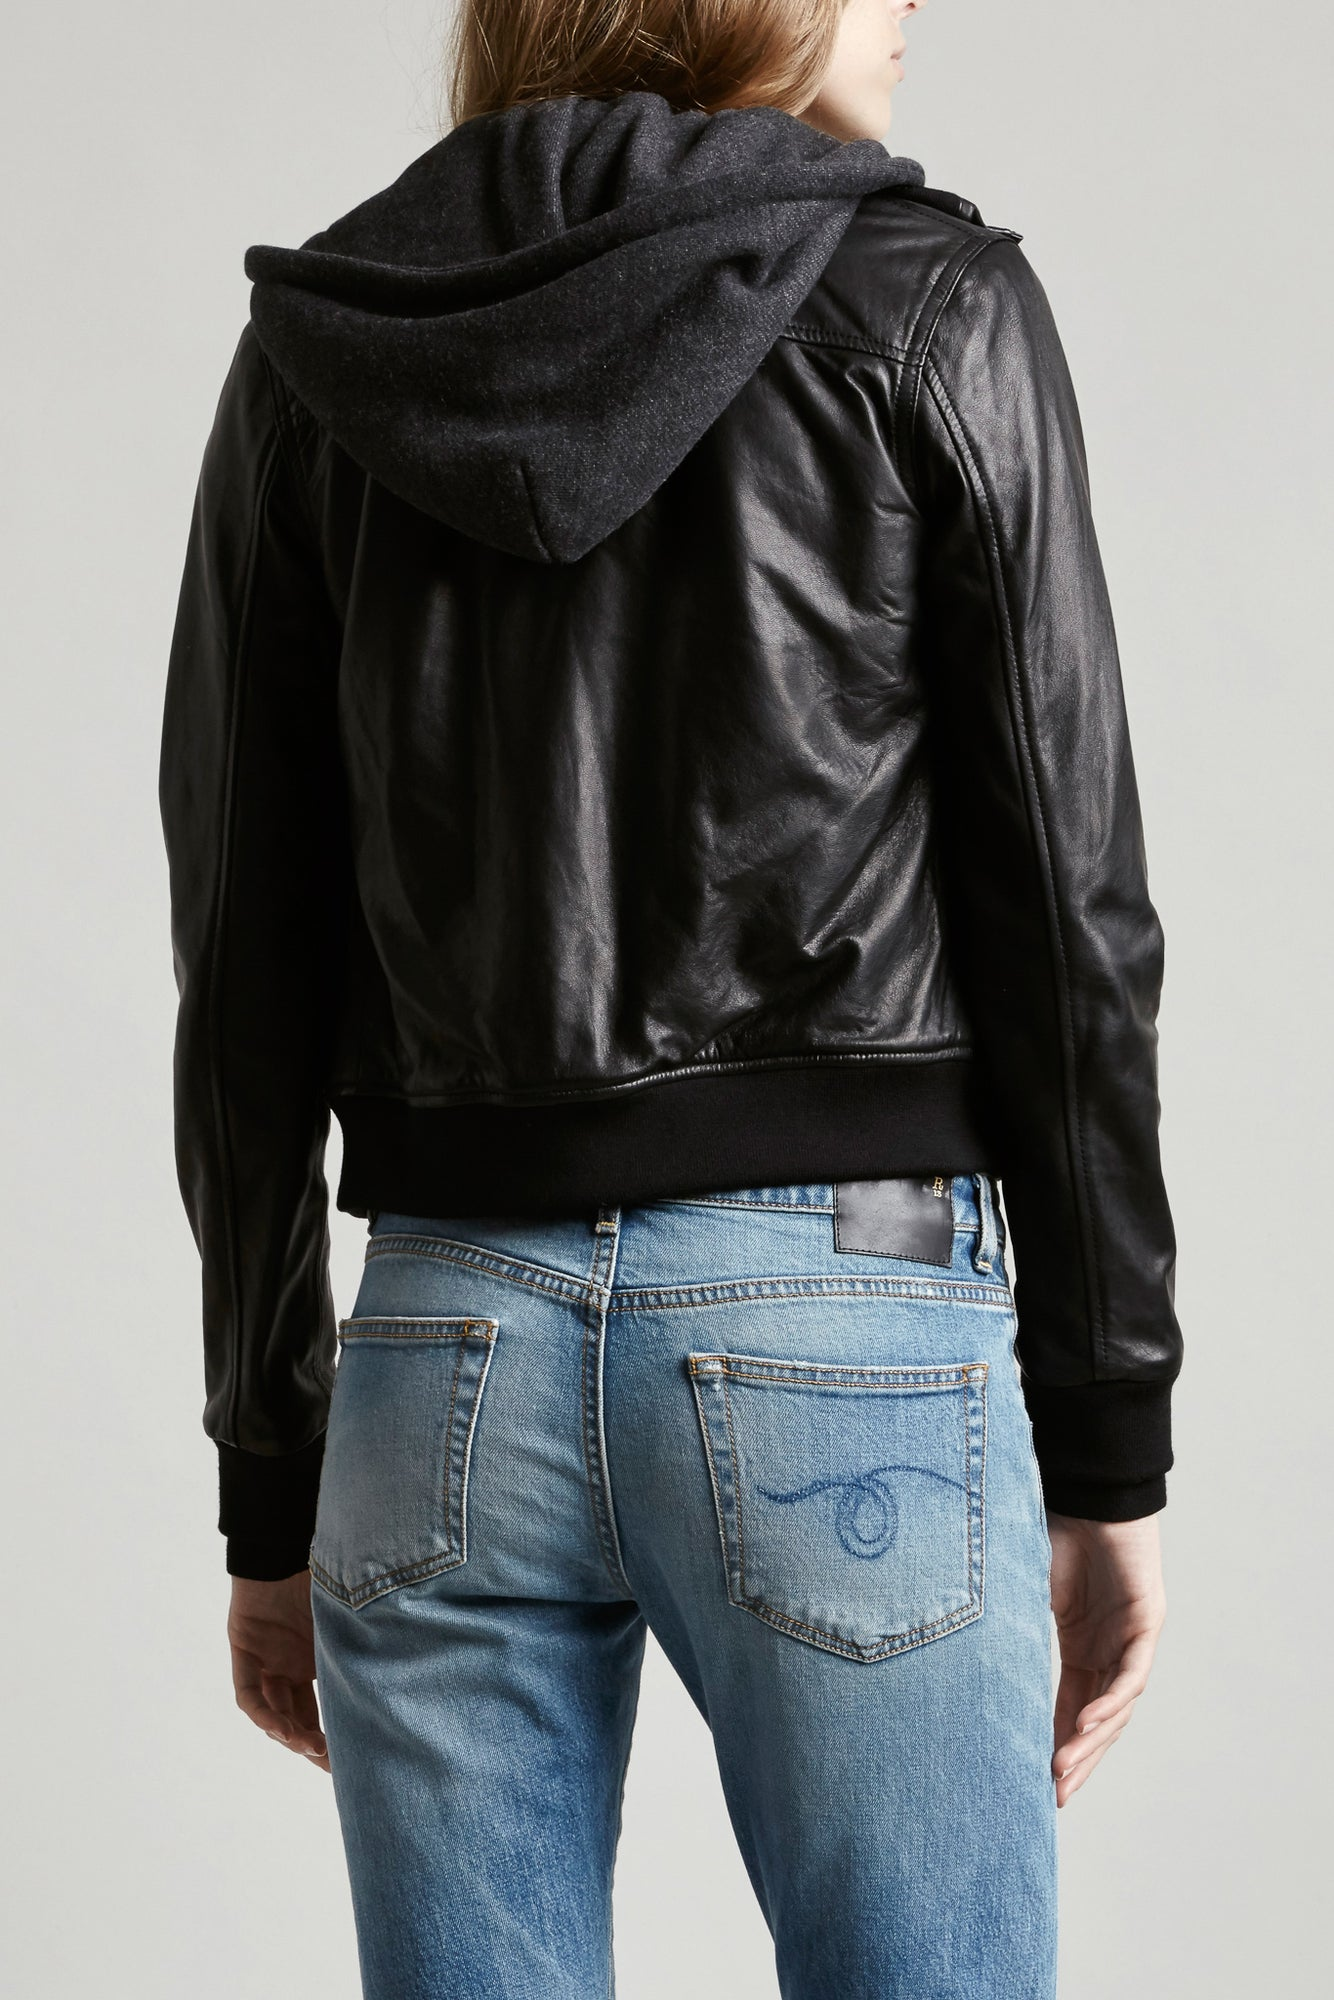 Hooded Leather Jacket - Black W/ Charcoal Knit